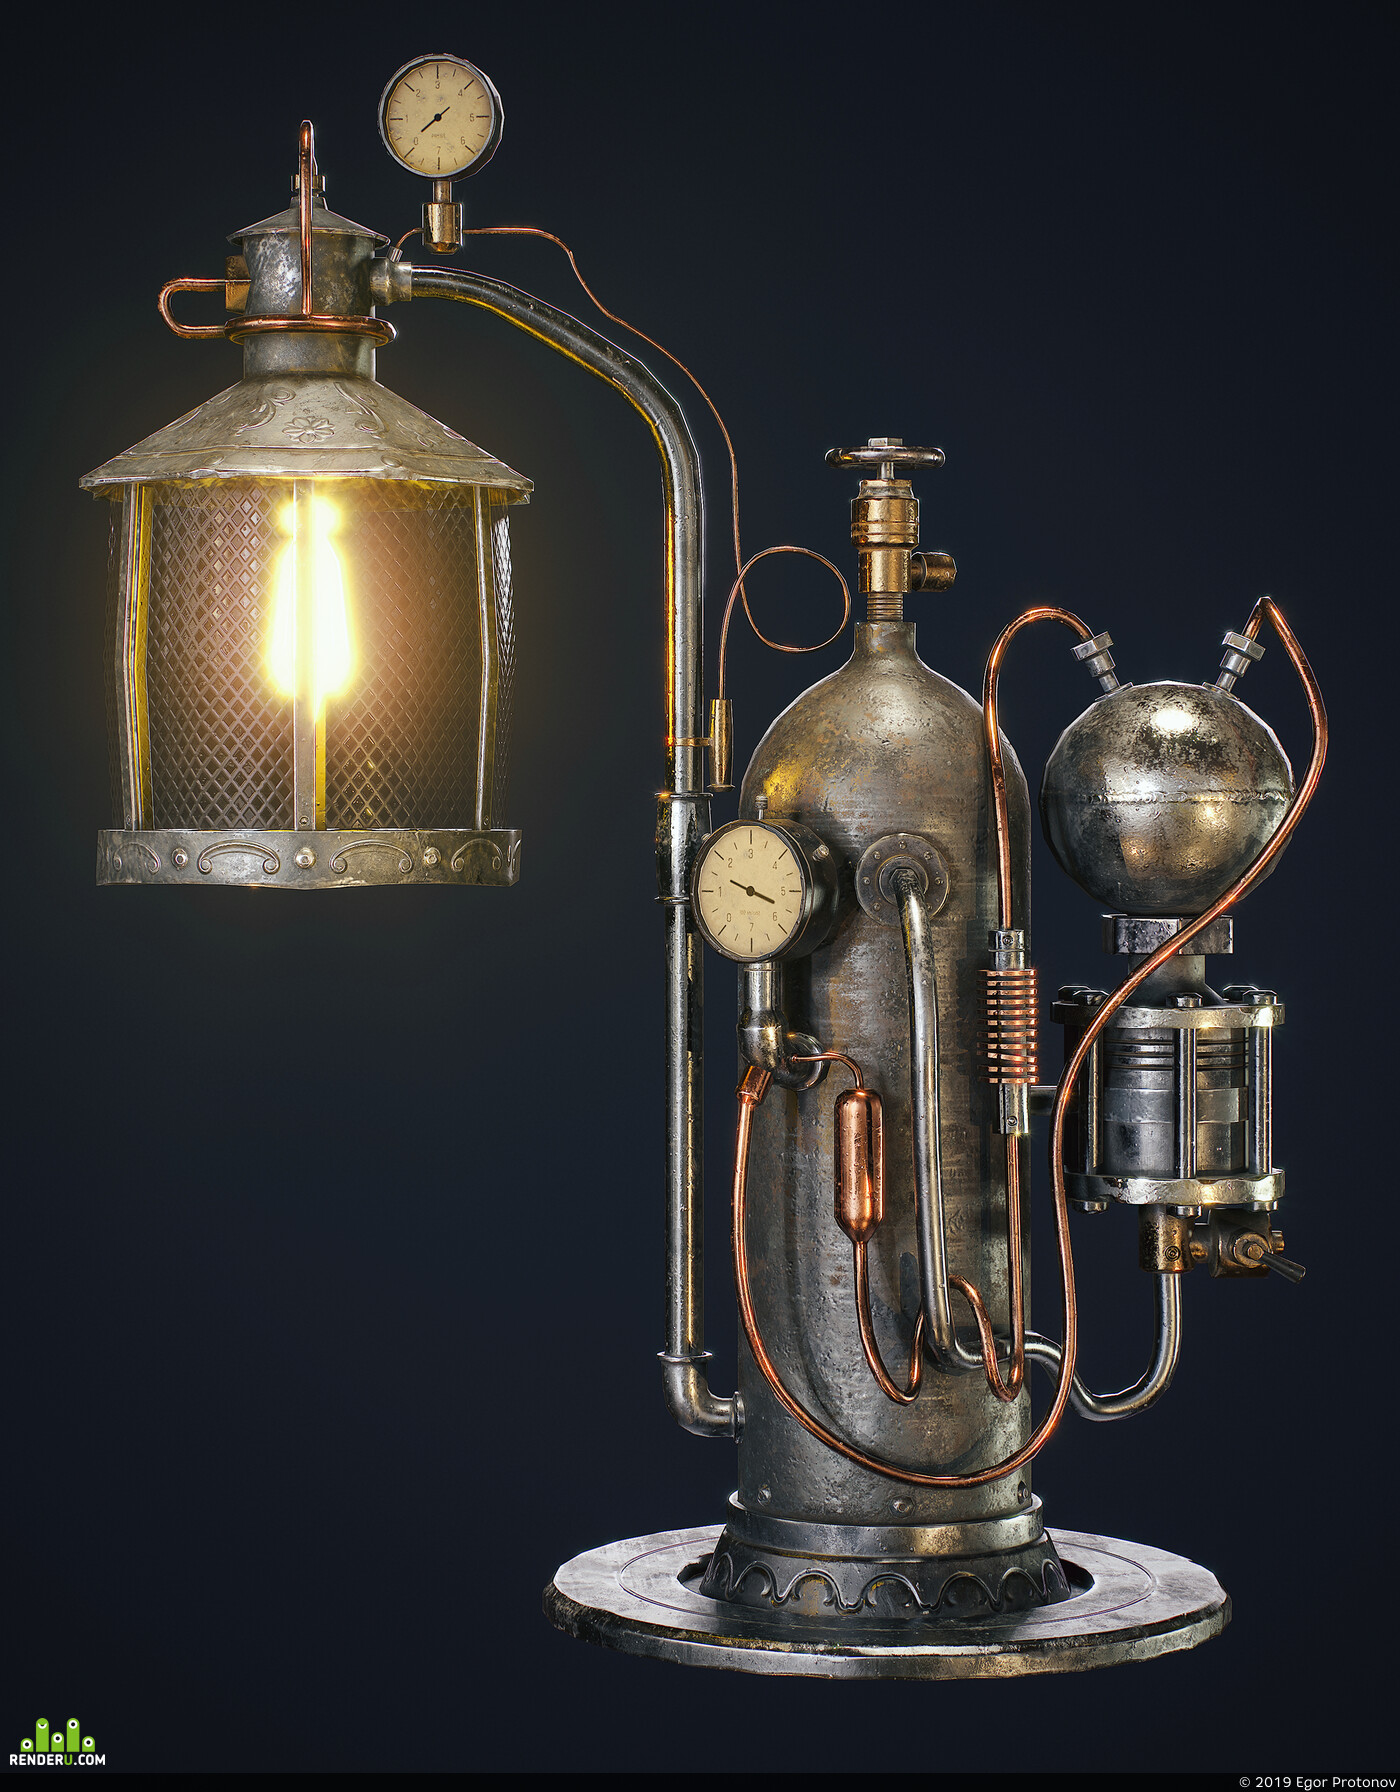 3d, CG, game art, Lamp, Game prop, 3d modeling, steampunk art